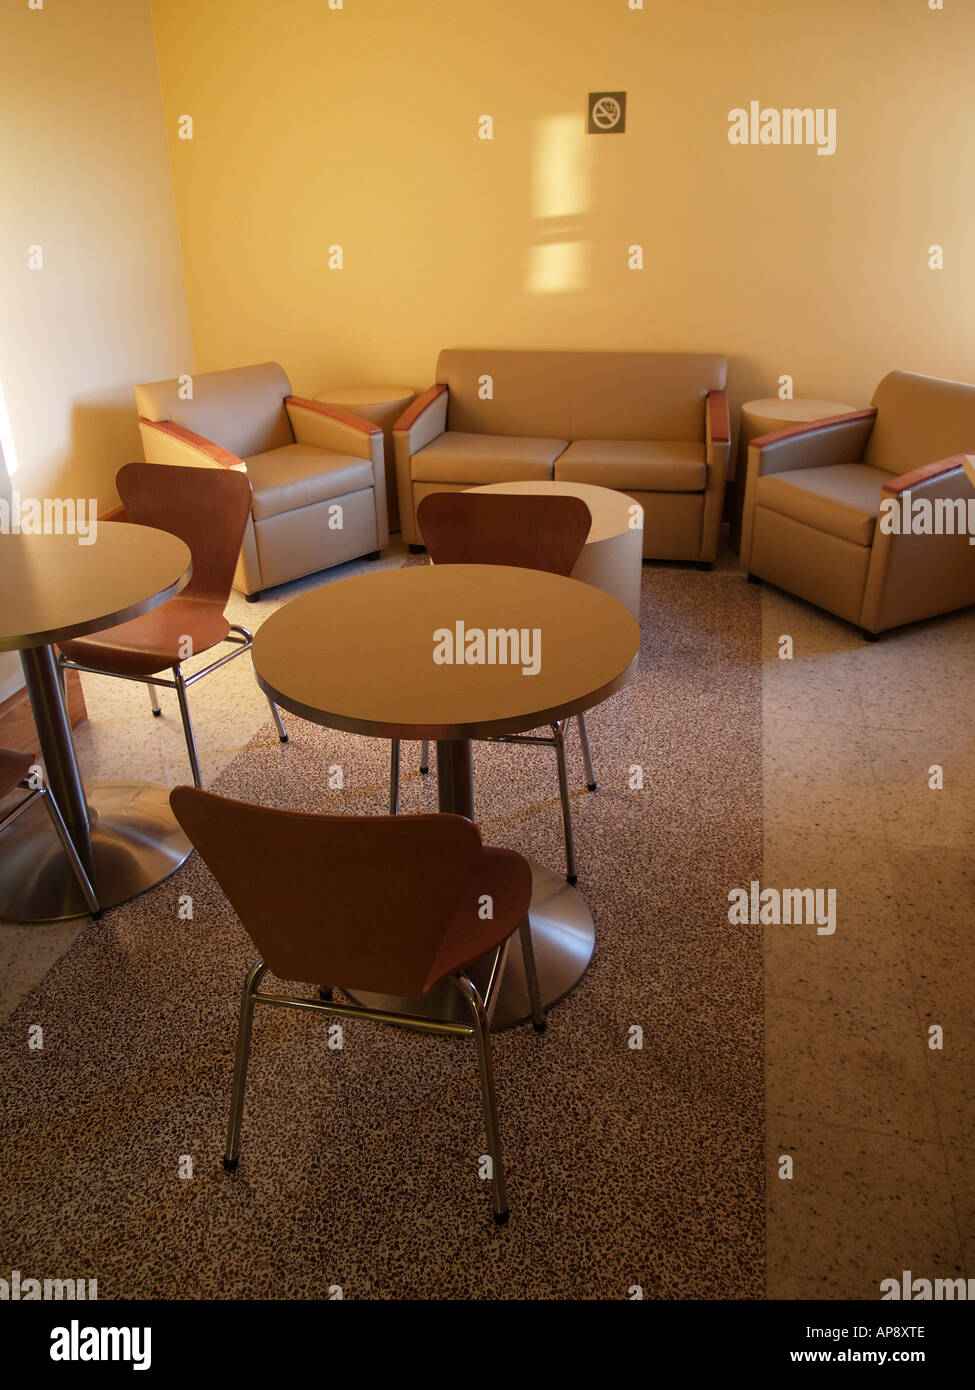 Interior Of A Lounge Or Waiting Room With Stuffed Chairs And Tables,  Naturally Lit